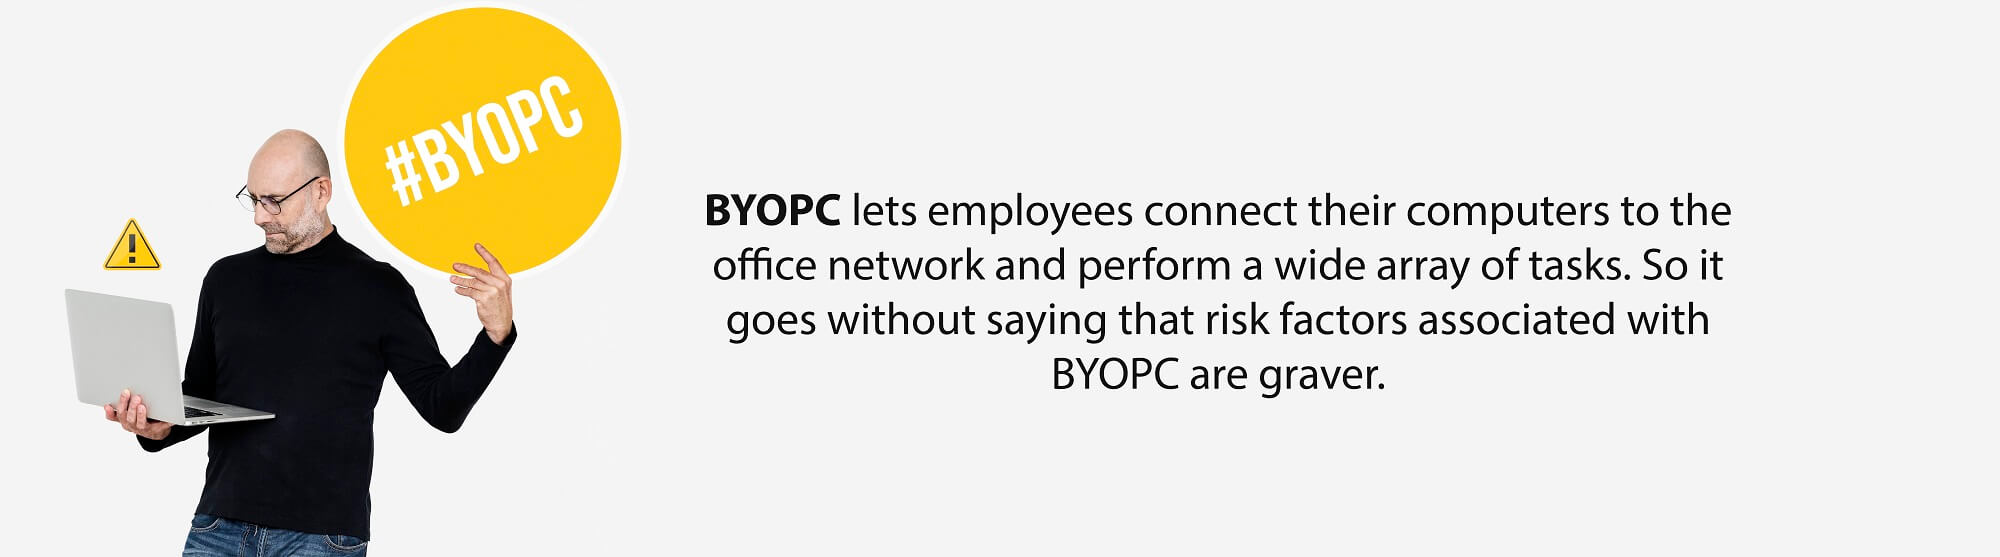 What businesses must consider before embracing BYOPC - Fact